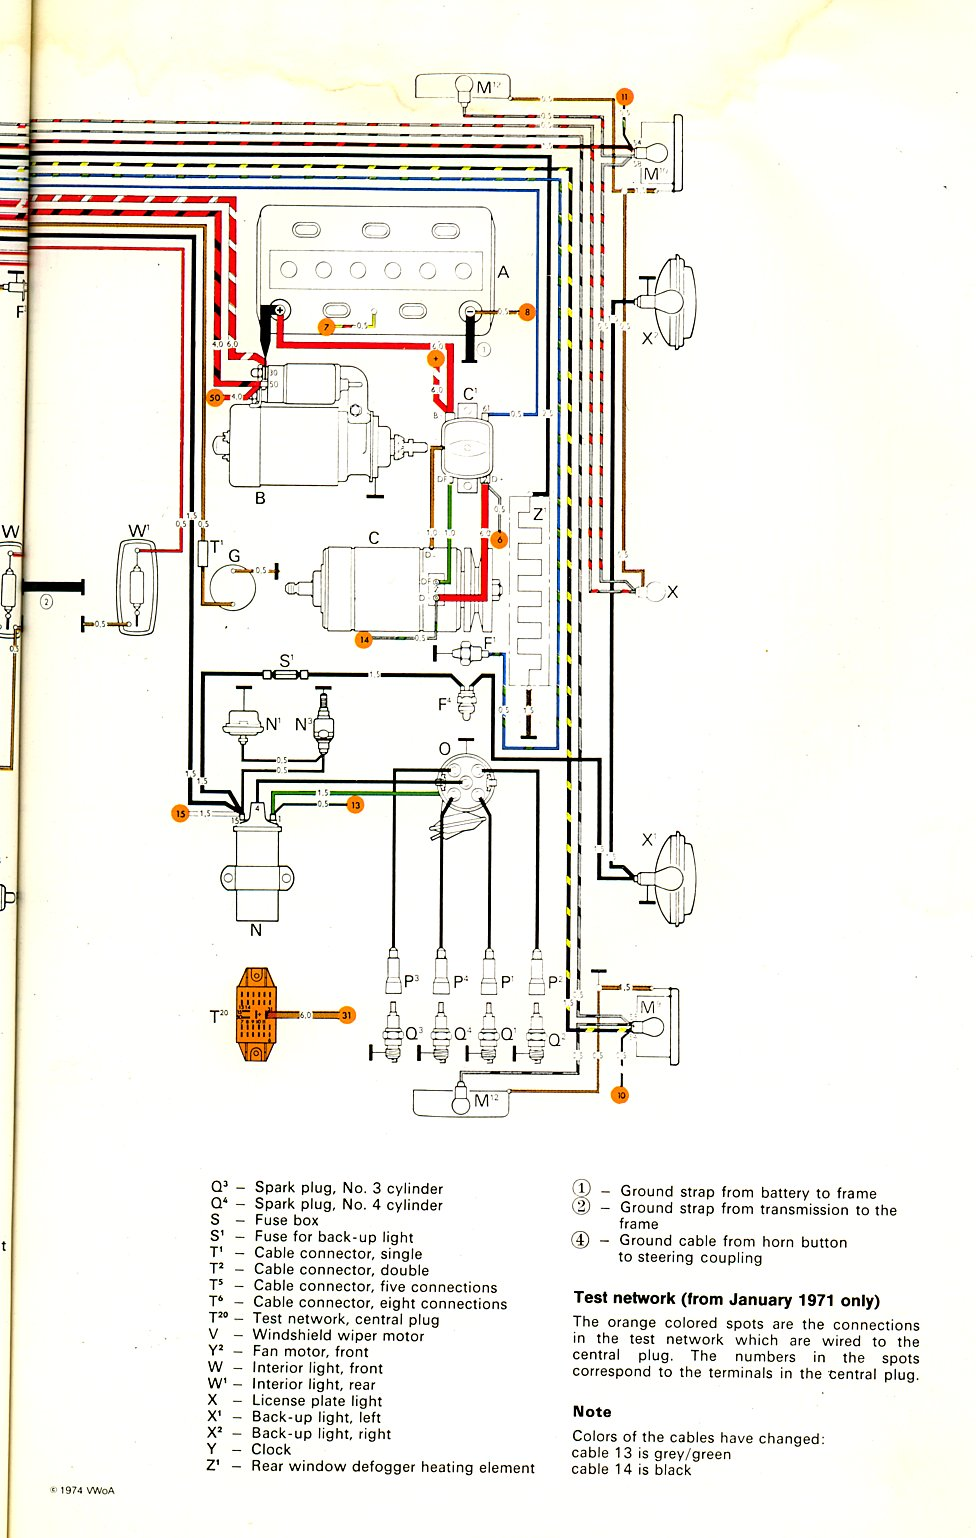 thesamba com type 2 wiring diagrams ignition and starter wiring highlight 1971 merged version rear window defroster and ambulance fans original factory diagrams fuse box is depicted